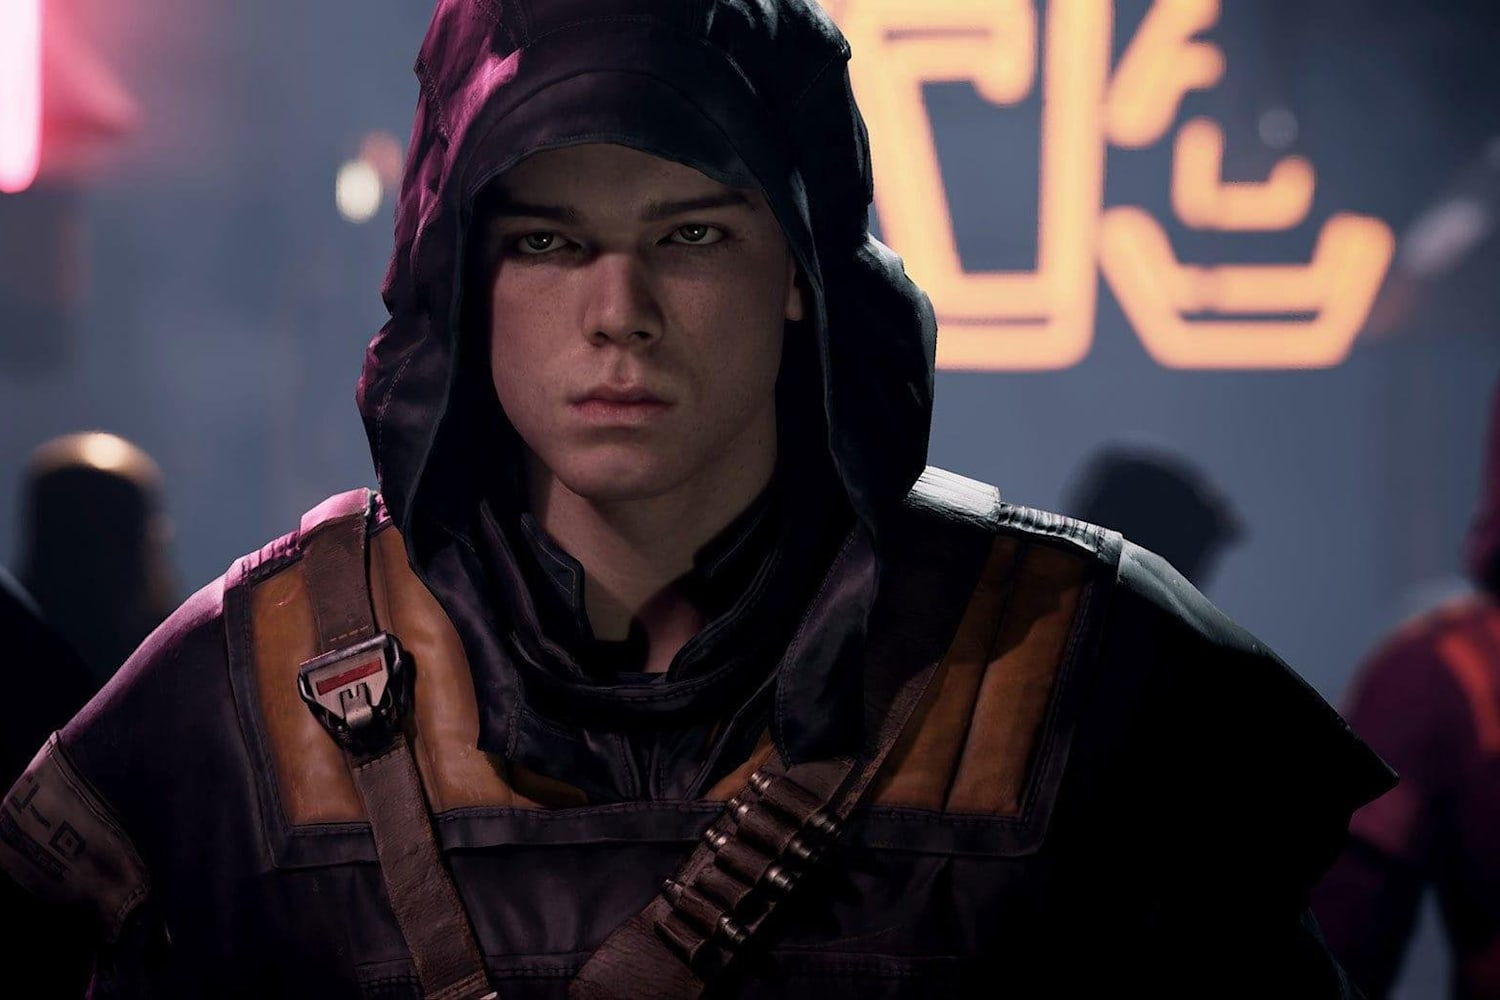 Star Wars Jedi: Fallen Order - Tips to be the best Jedi